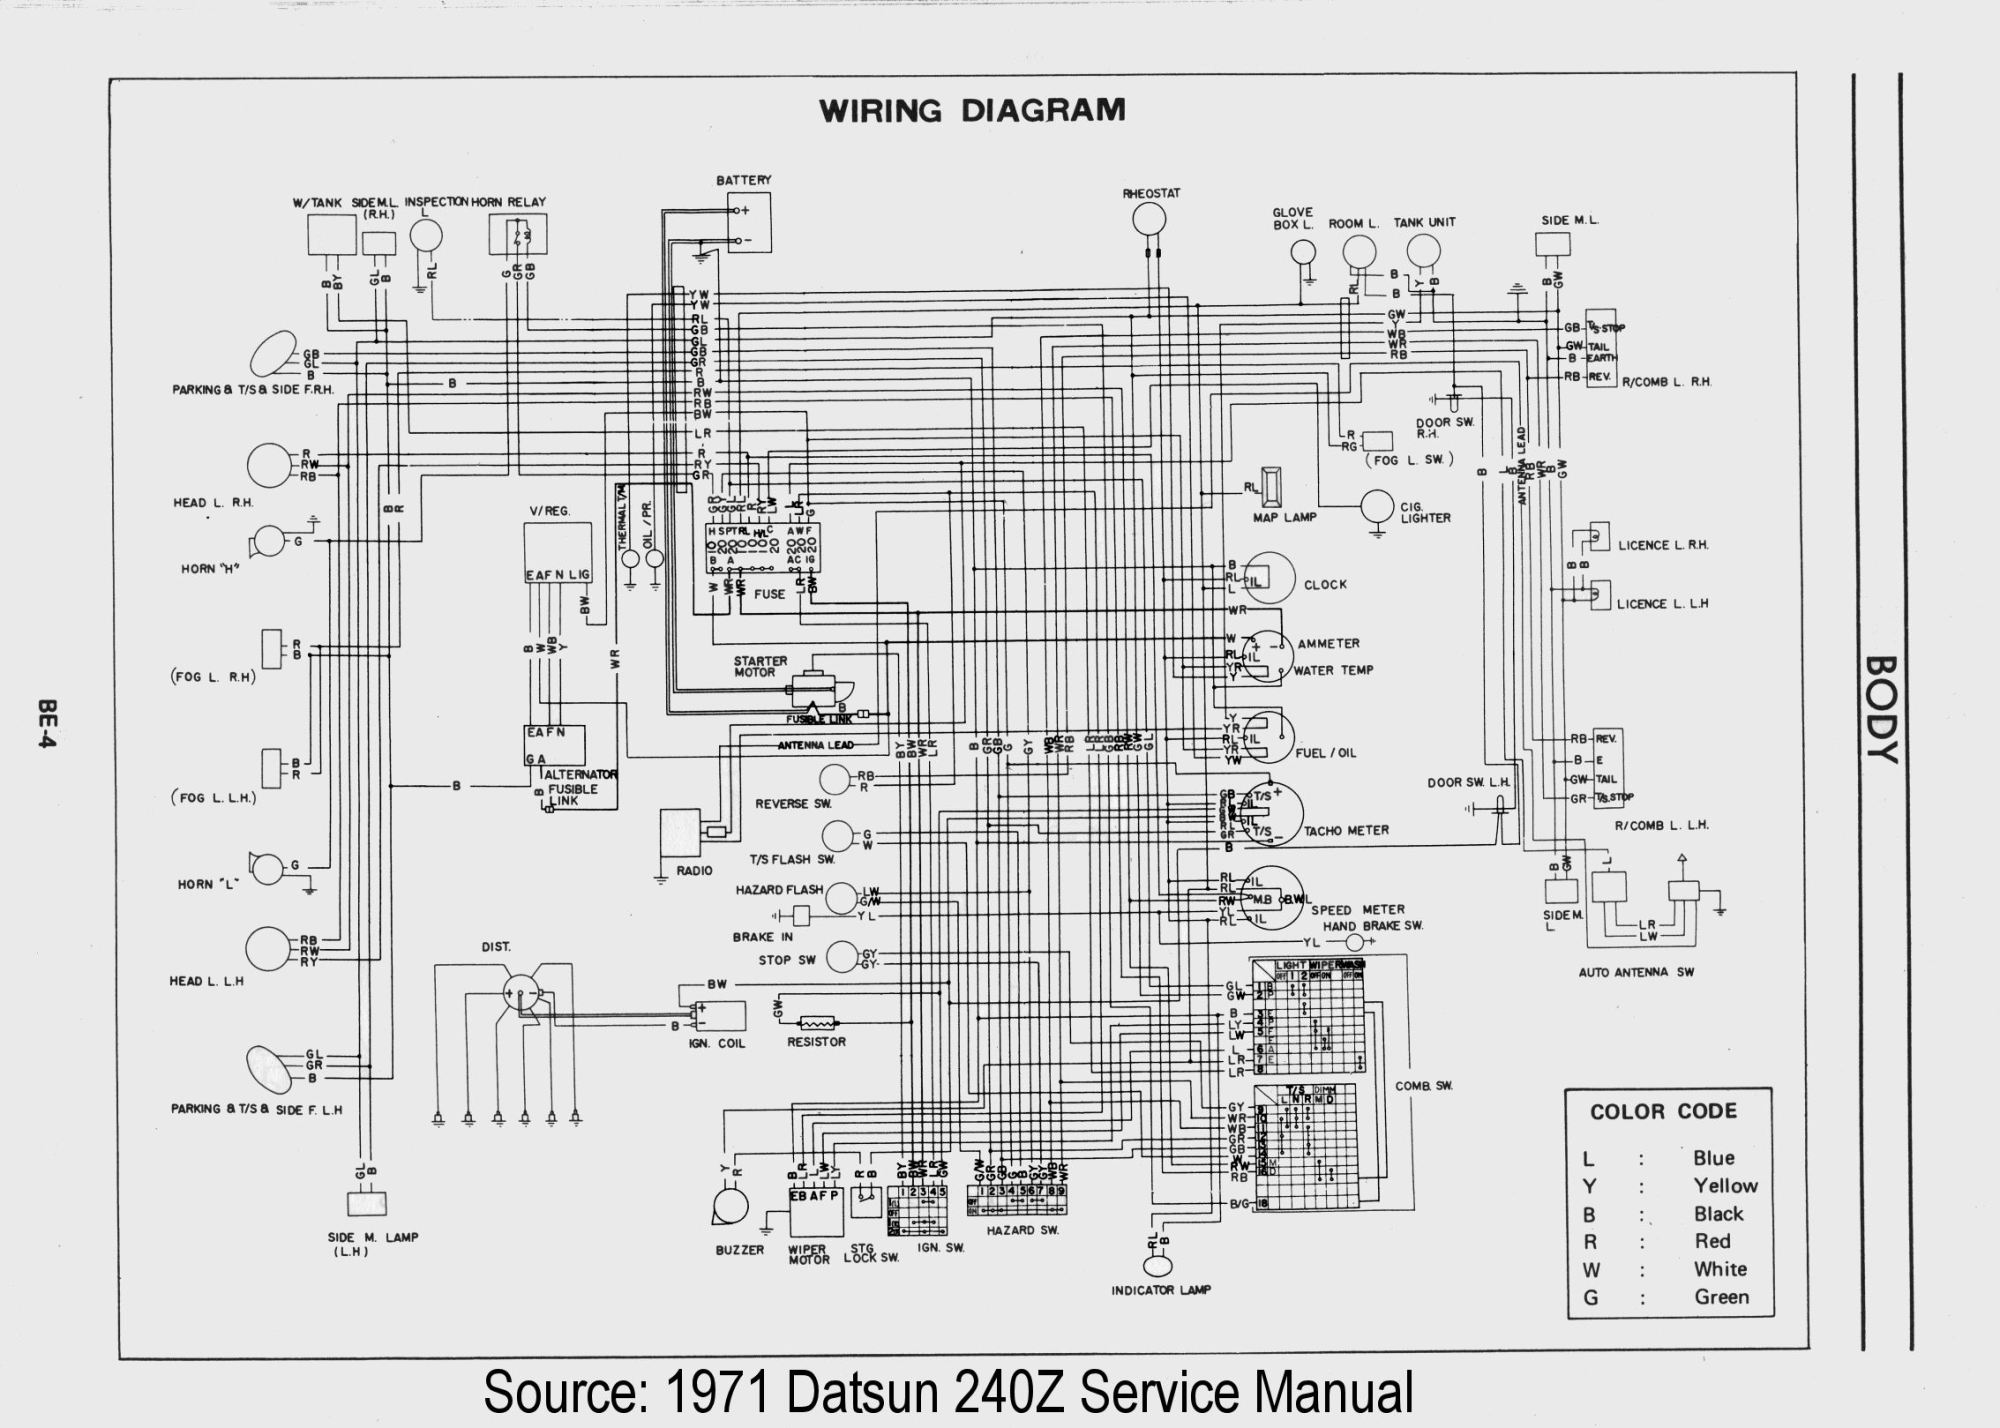 hight resolution of 73 datsun 620 wiring diagram wiring database library ballast resistor wiring diagram 73 datsun 620 wiring